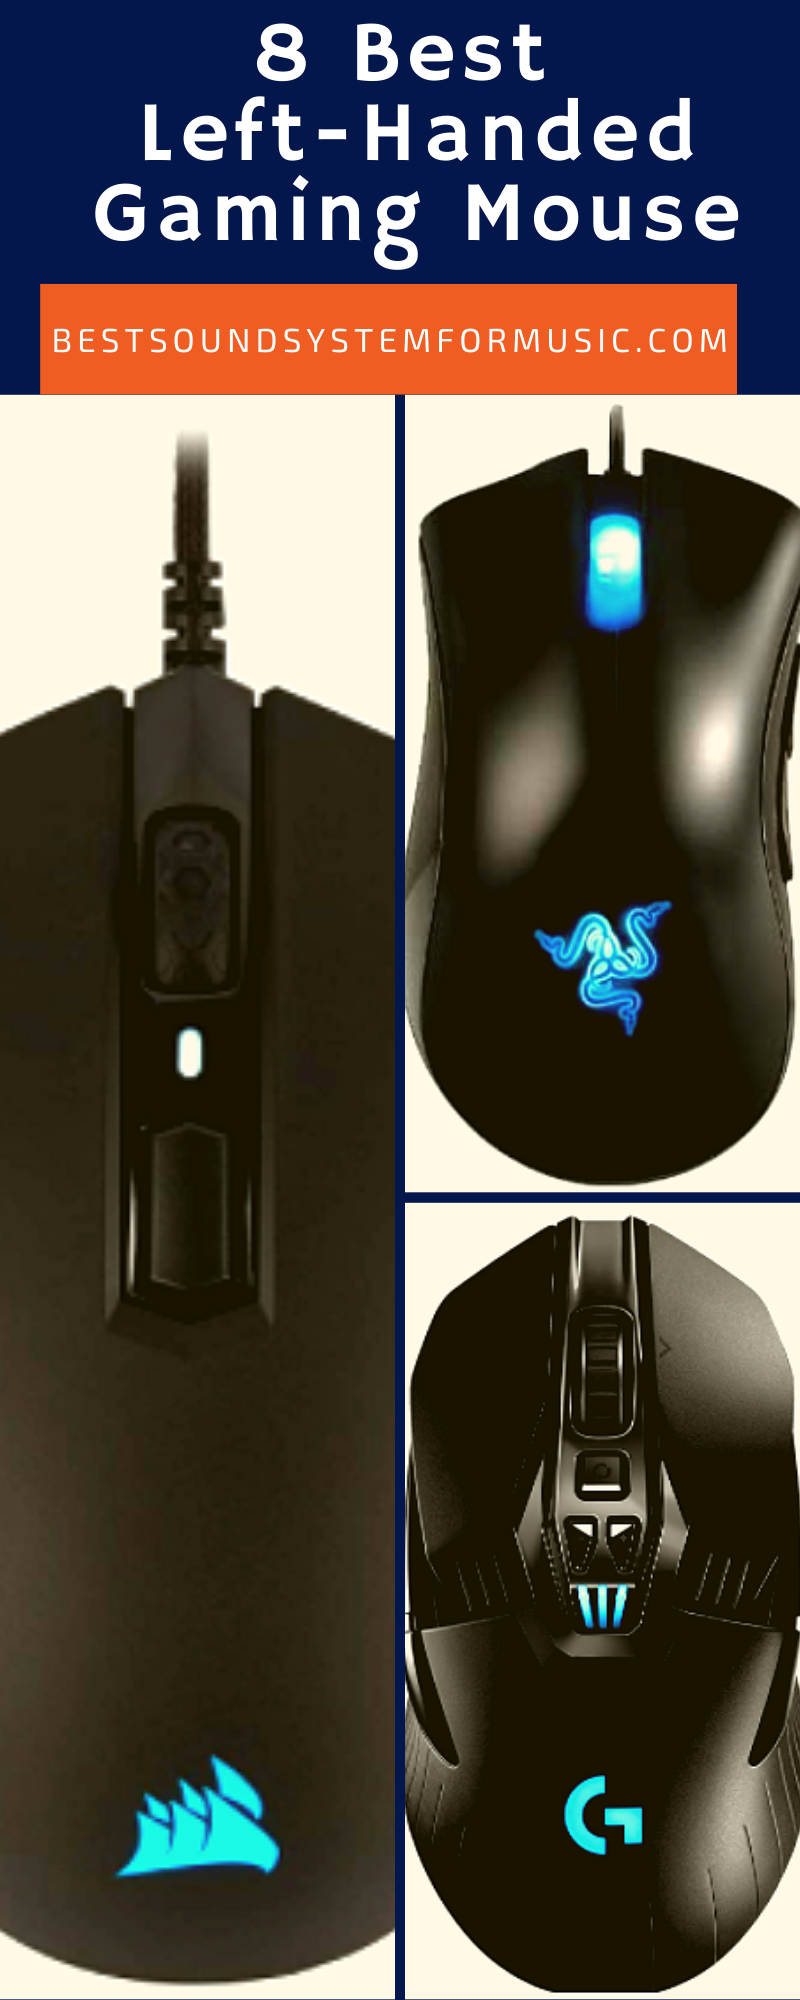 8 Best Left-Handed Gaming Mouse